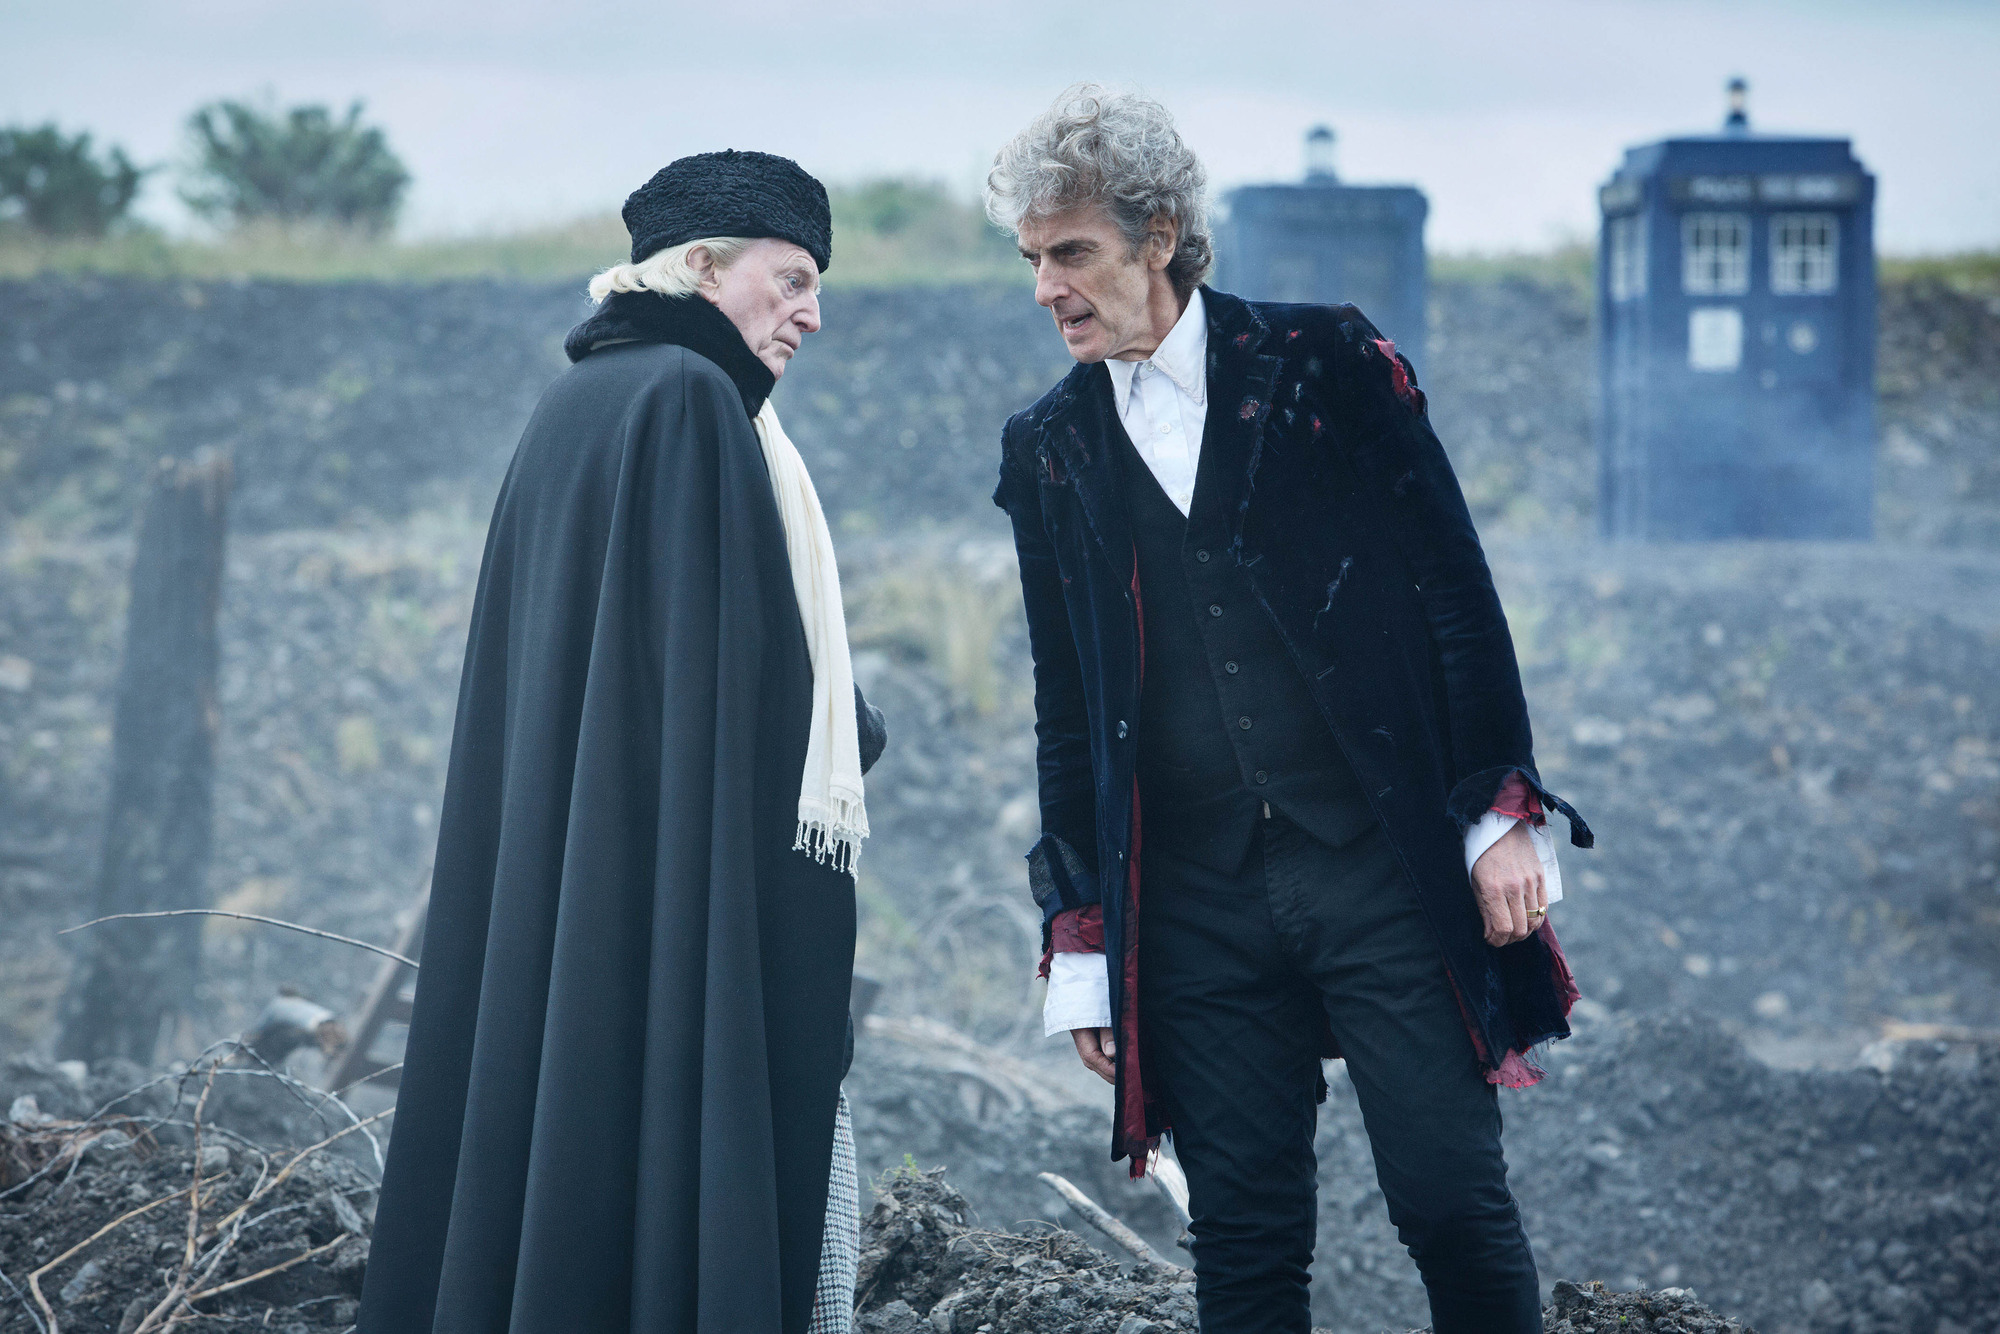 Doctor Who 2017 Christmas special cast and spoilers revealed